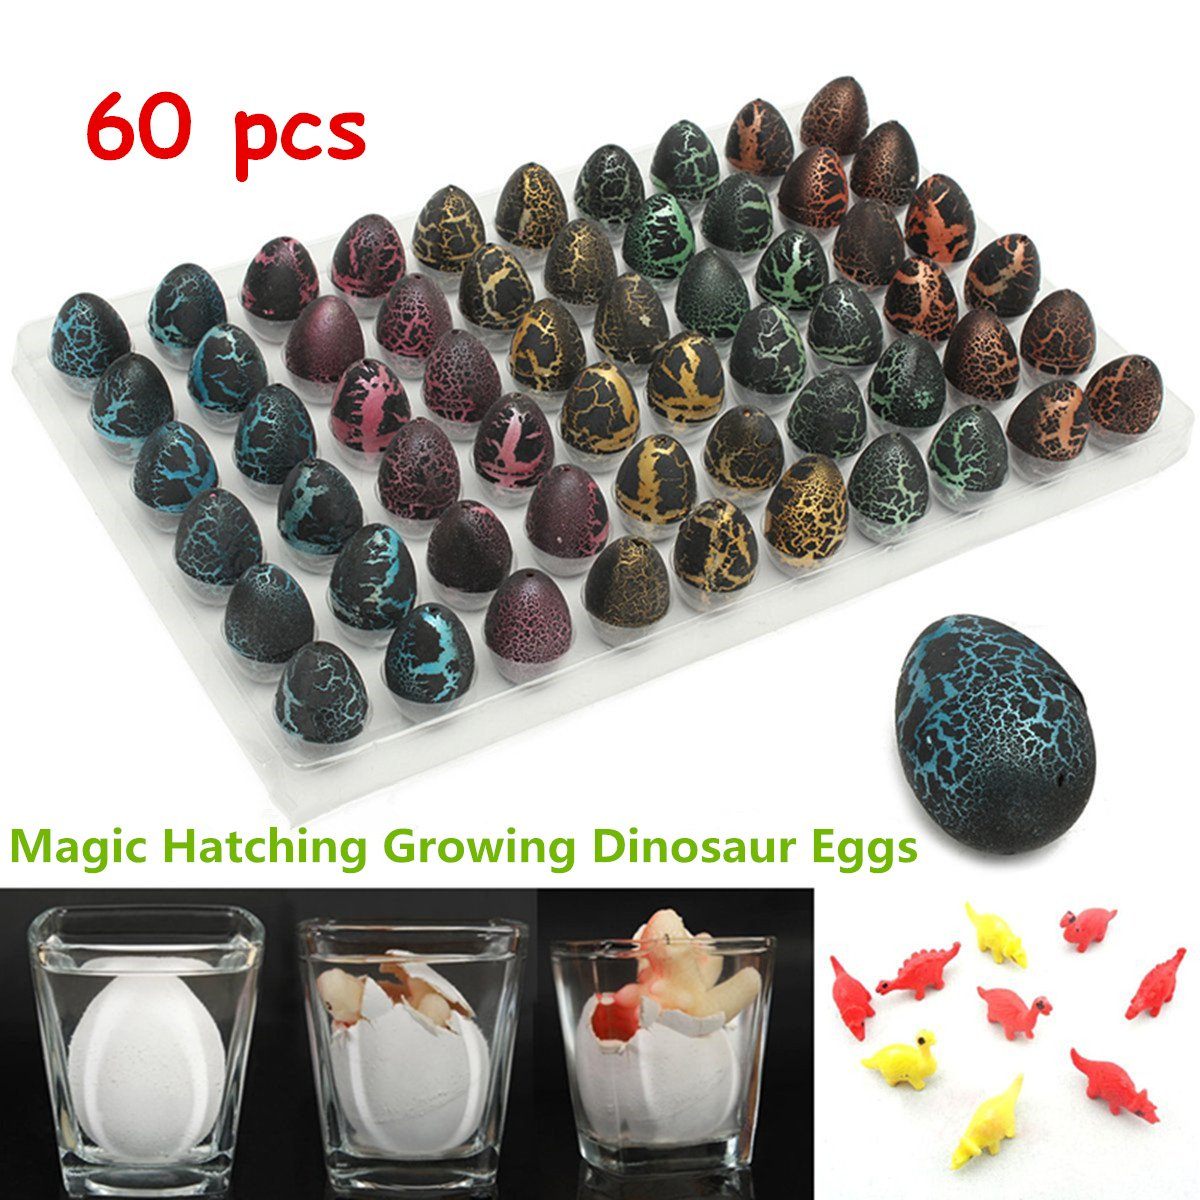 CAVEEN 60pcs Magic Hatching Growing Pet Dinosaur Eggs Mini Toy Dinosaur Add Water Hatching Dino Growing Toy Gifts by Caveen